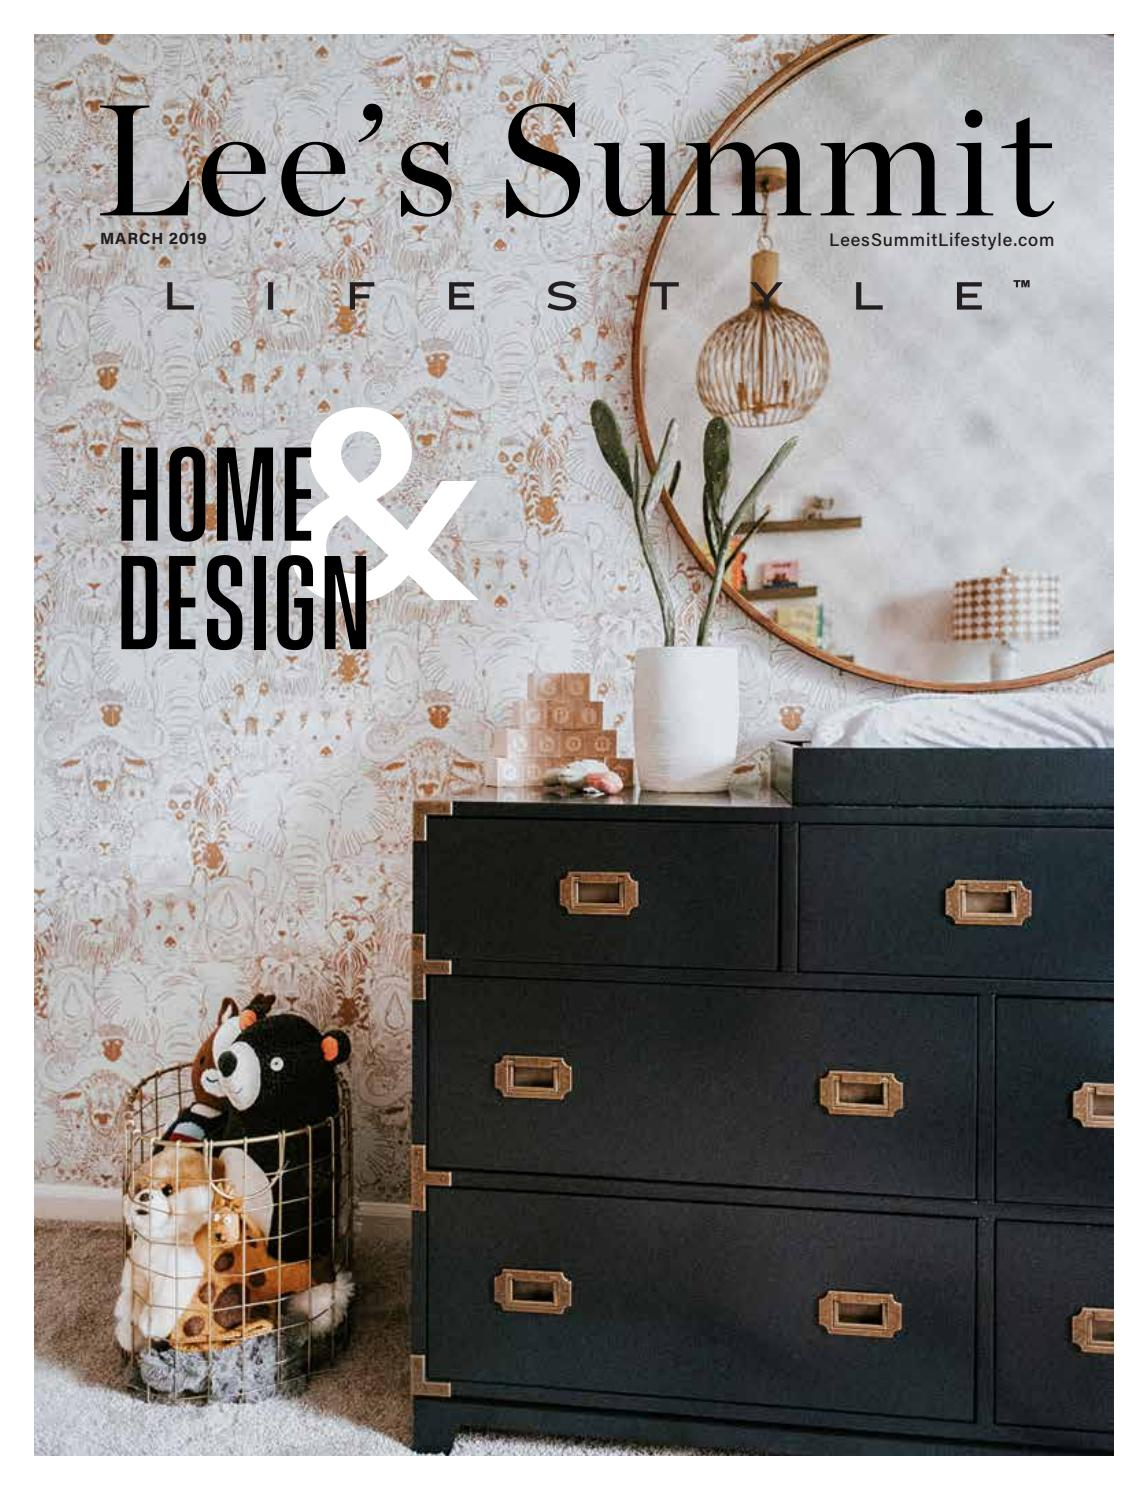 primitive home decor and more cheap home decor.htm lee s summit  mo march 2019 by lifestyle publications issuu  summit  mo march 2019 by lifestyle